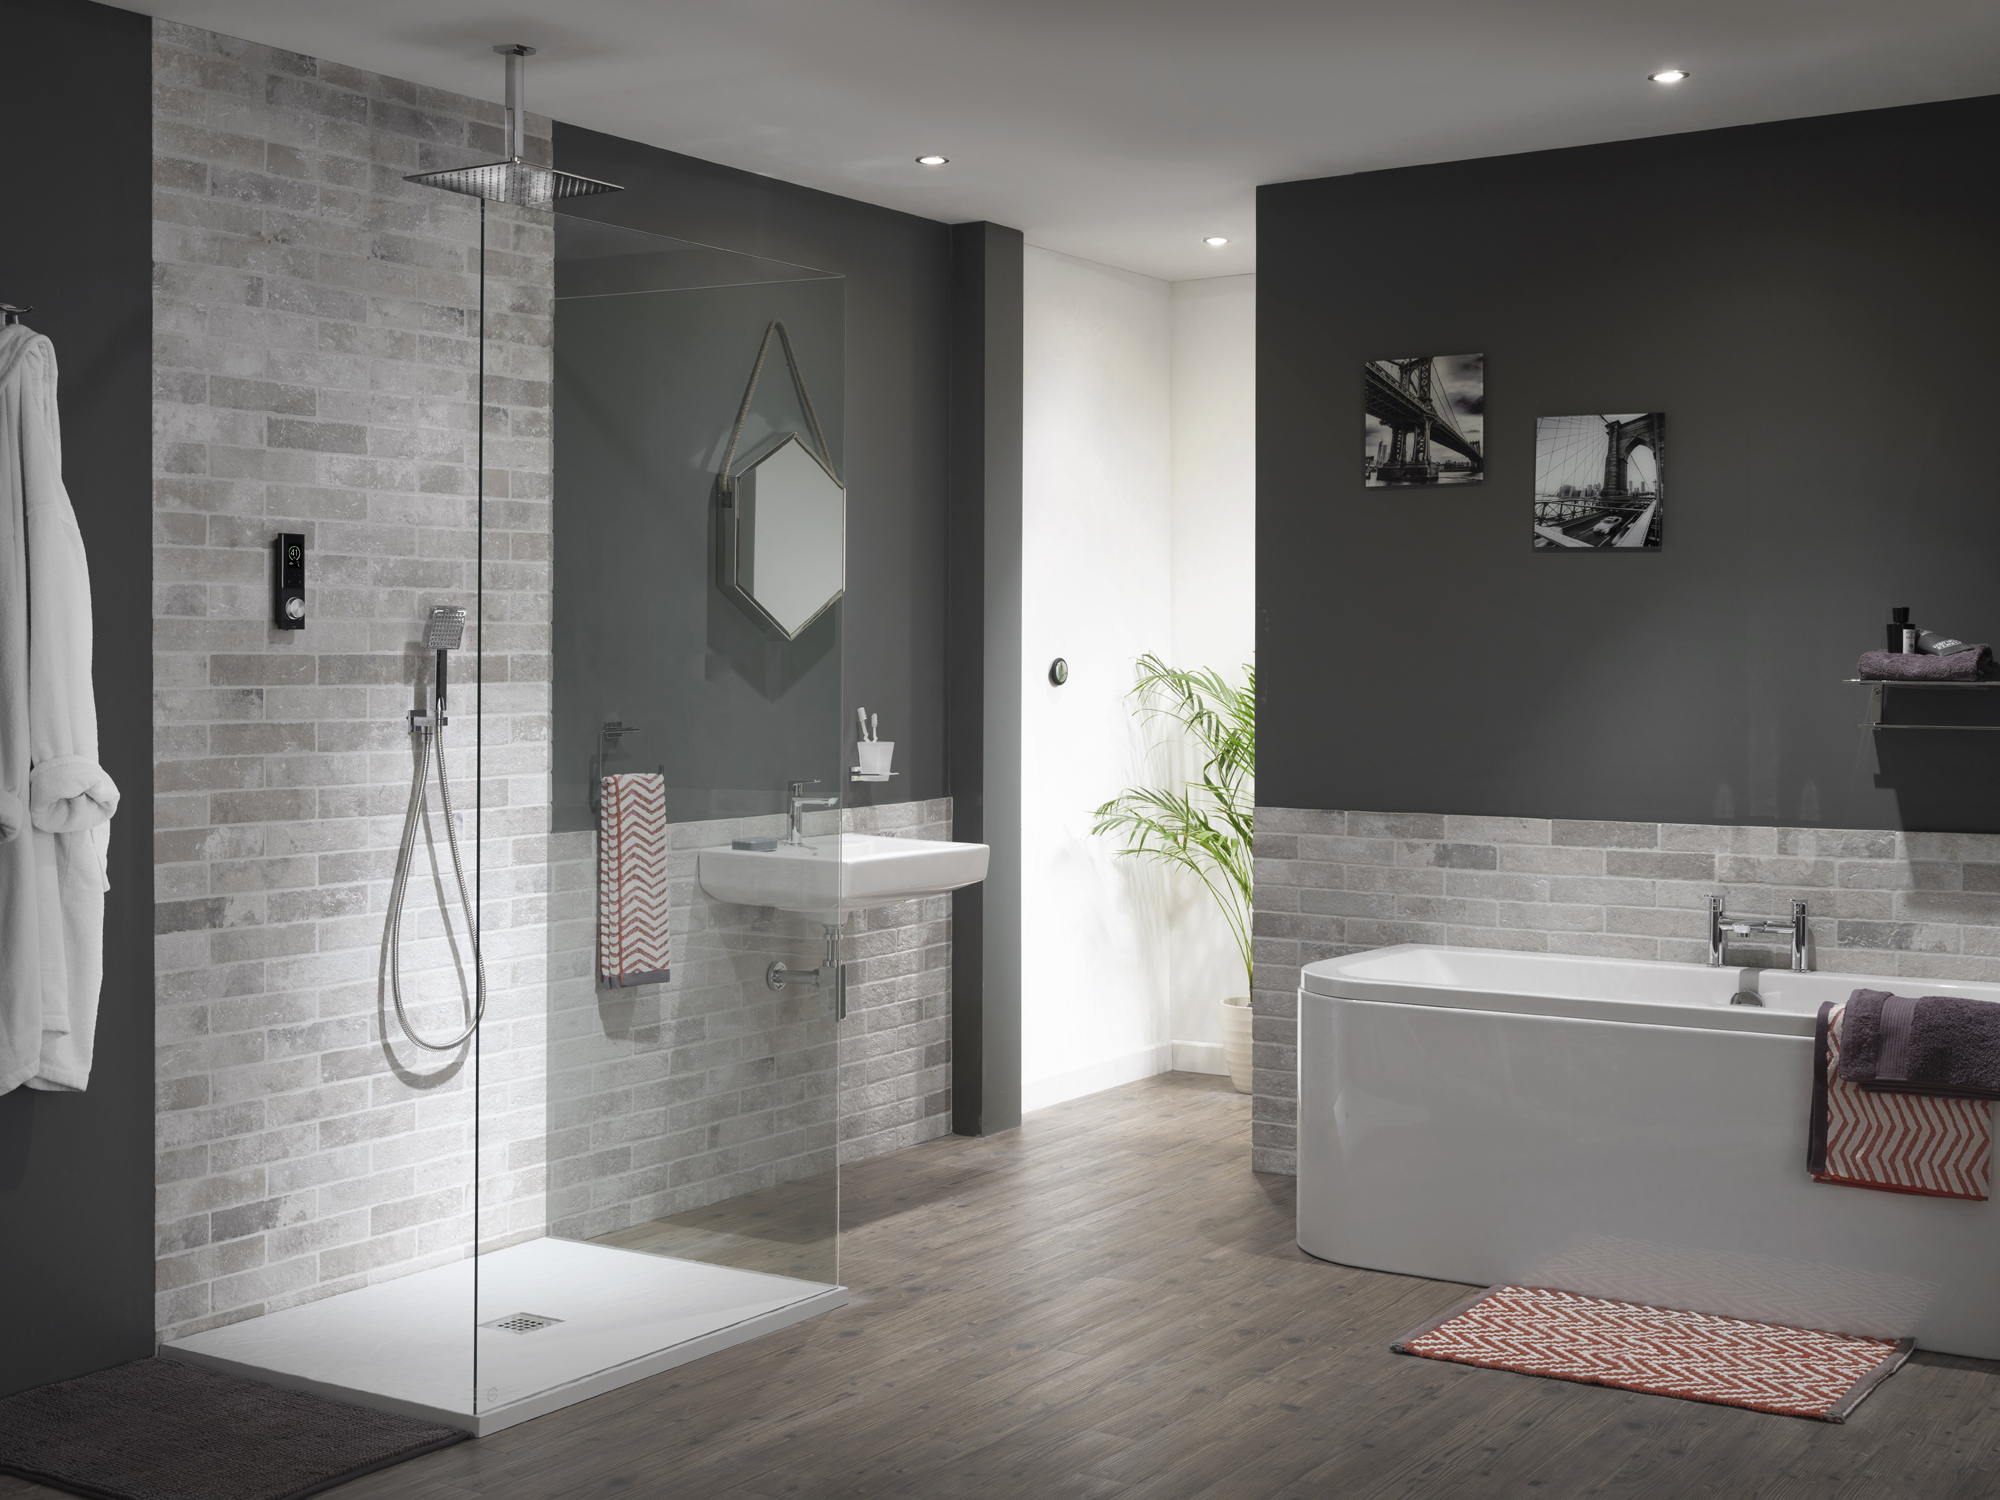 Using The Latest Shower Trends To Create Stand-out Bathrooms